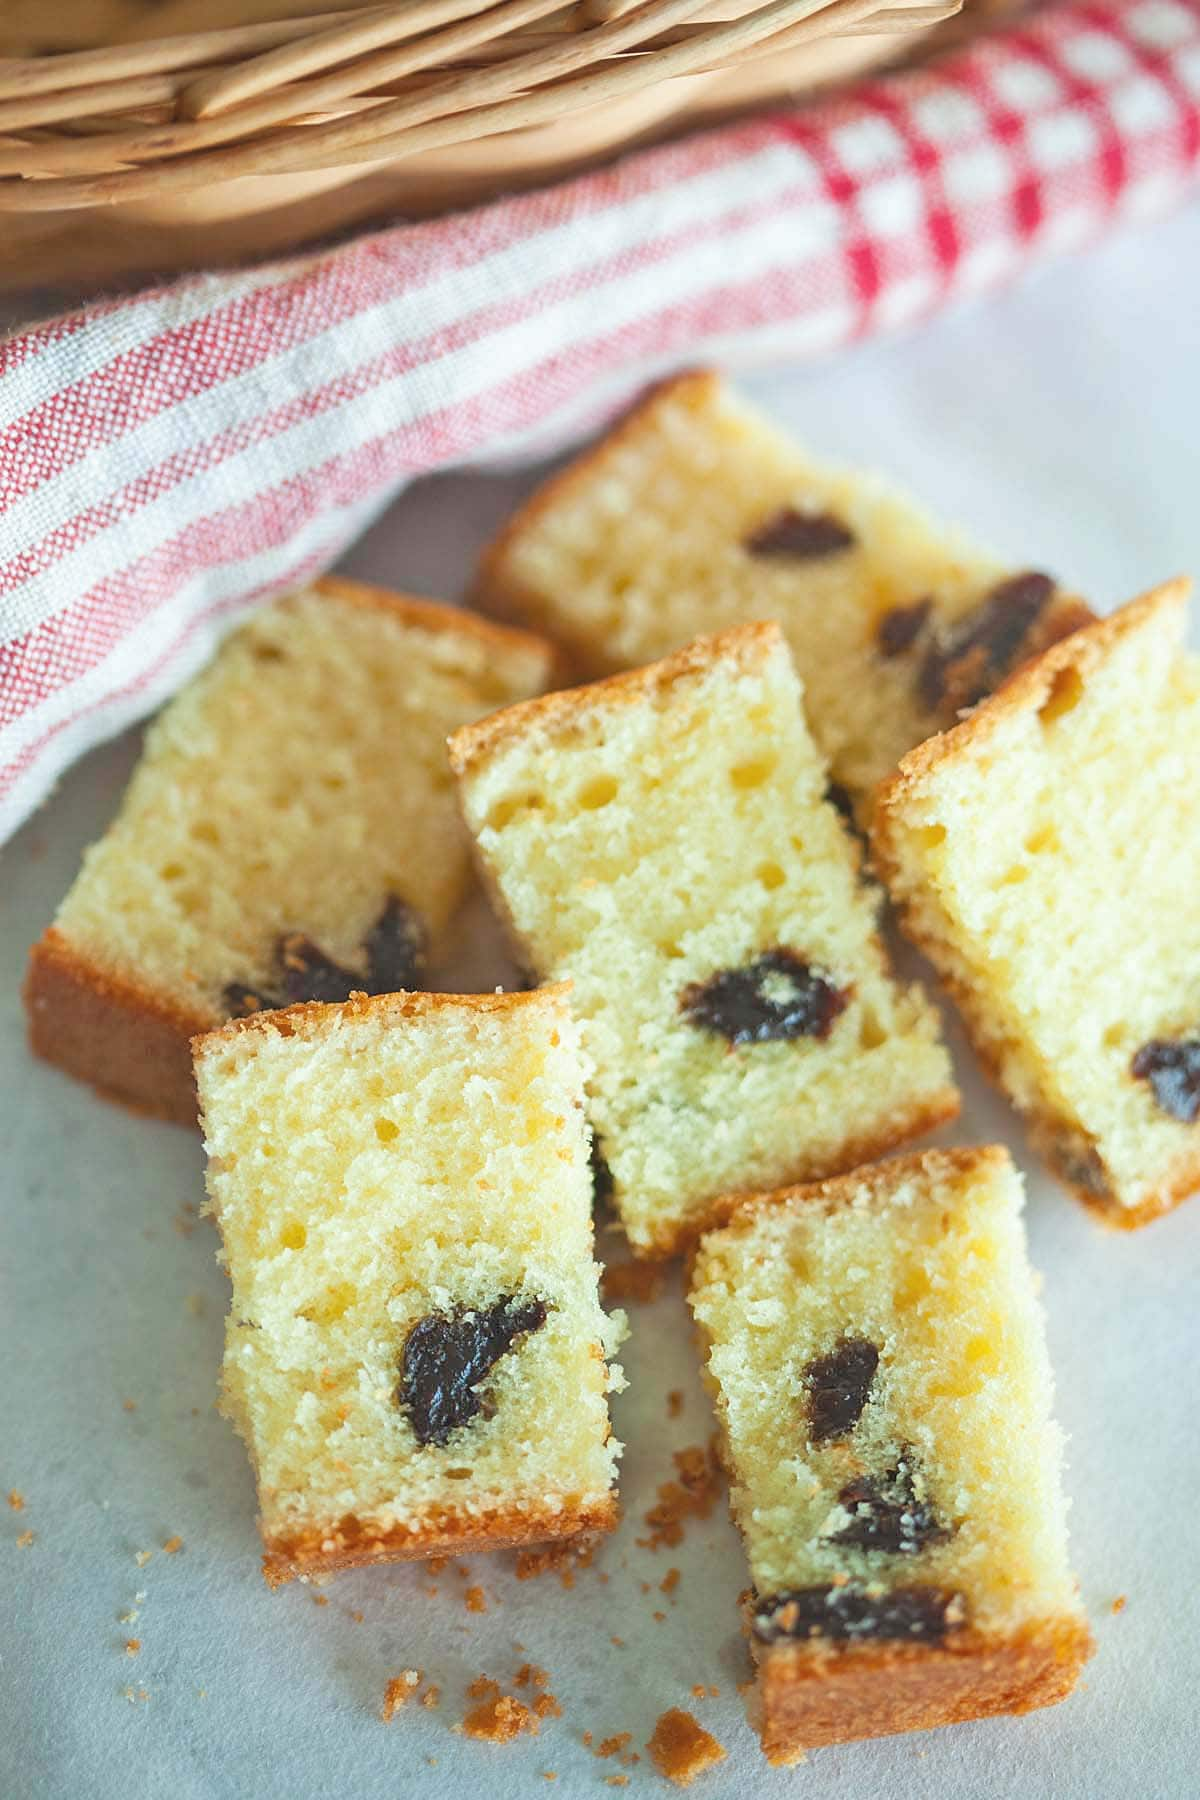 Brandy butter cake with splashes of brandy plus dried prunes.